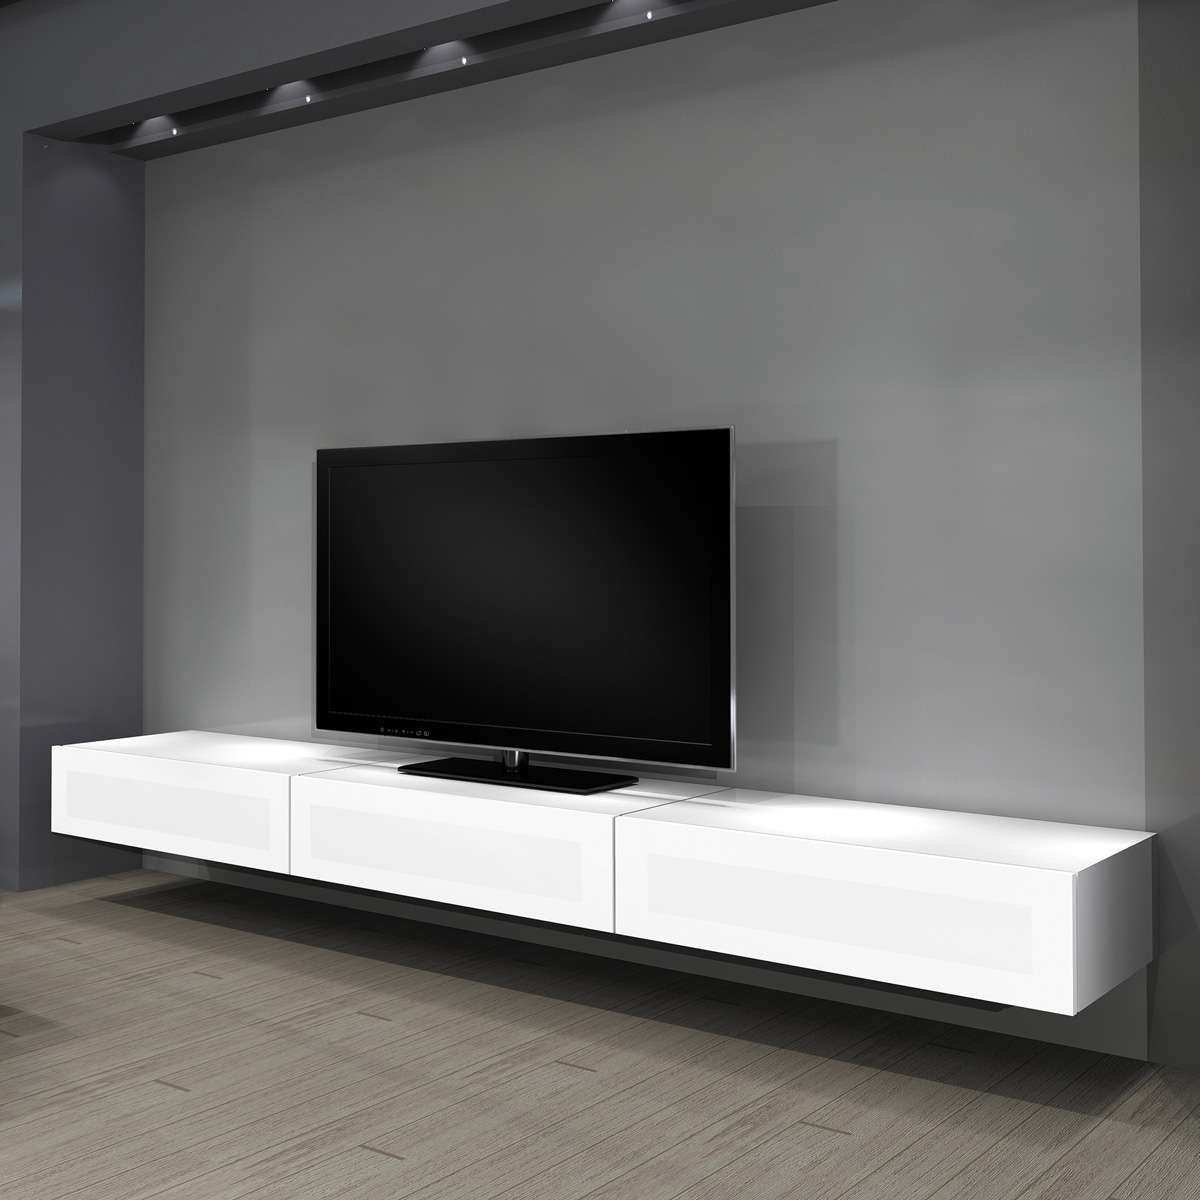 Nice Grey Concrete Wall Of The Ikea Tv Cabinet Wall Mount That Can Within Modern Tv Stands With Mount (View 11 of 15)